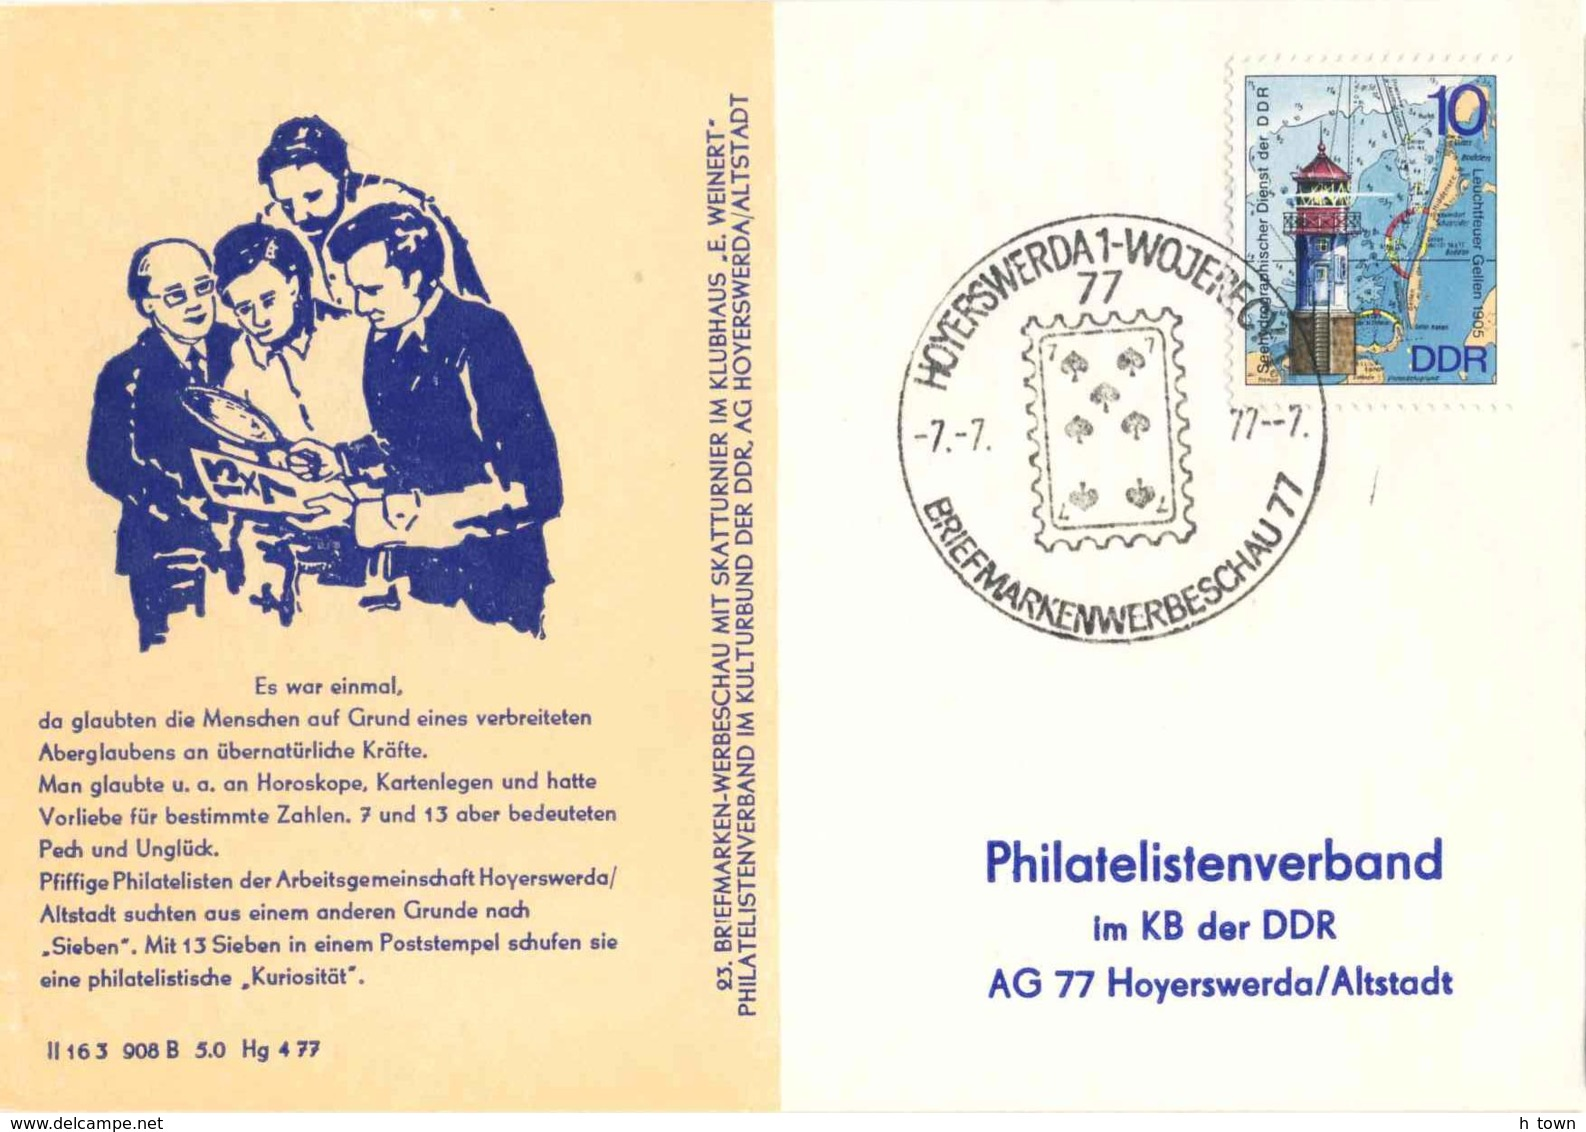 7289  Jeu De Cartes: Oblit. Temporaire D'Allemagne, 1977 -  Playing Card, Date 7.7.77: Pictorial Cancel From Germany - Spiele